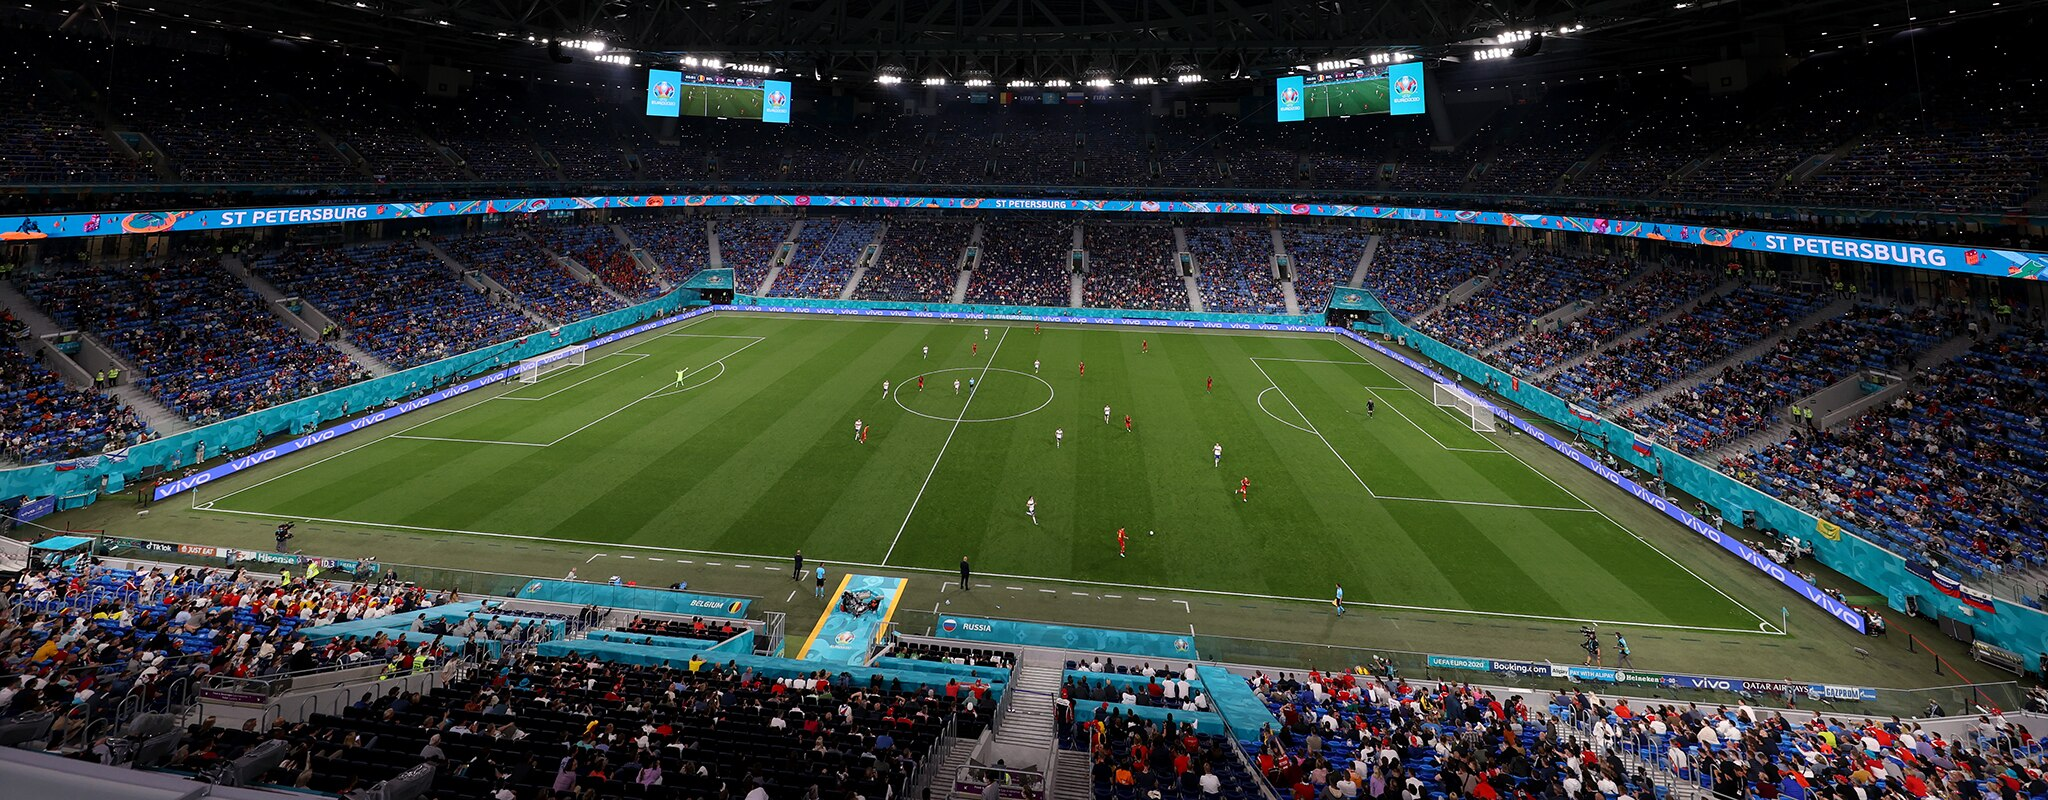 Finland-Russia    Finland – Russia 0:1: Russia keeps its chances    European Football Championship 2020